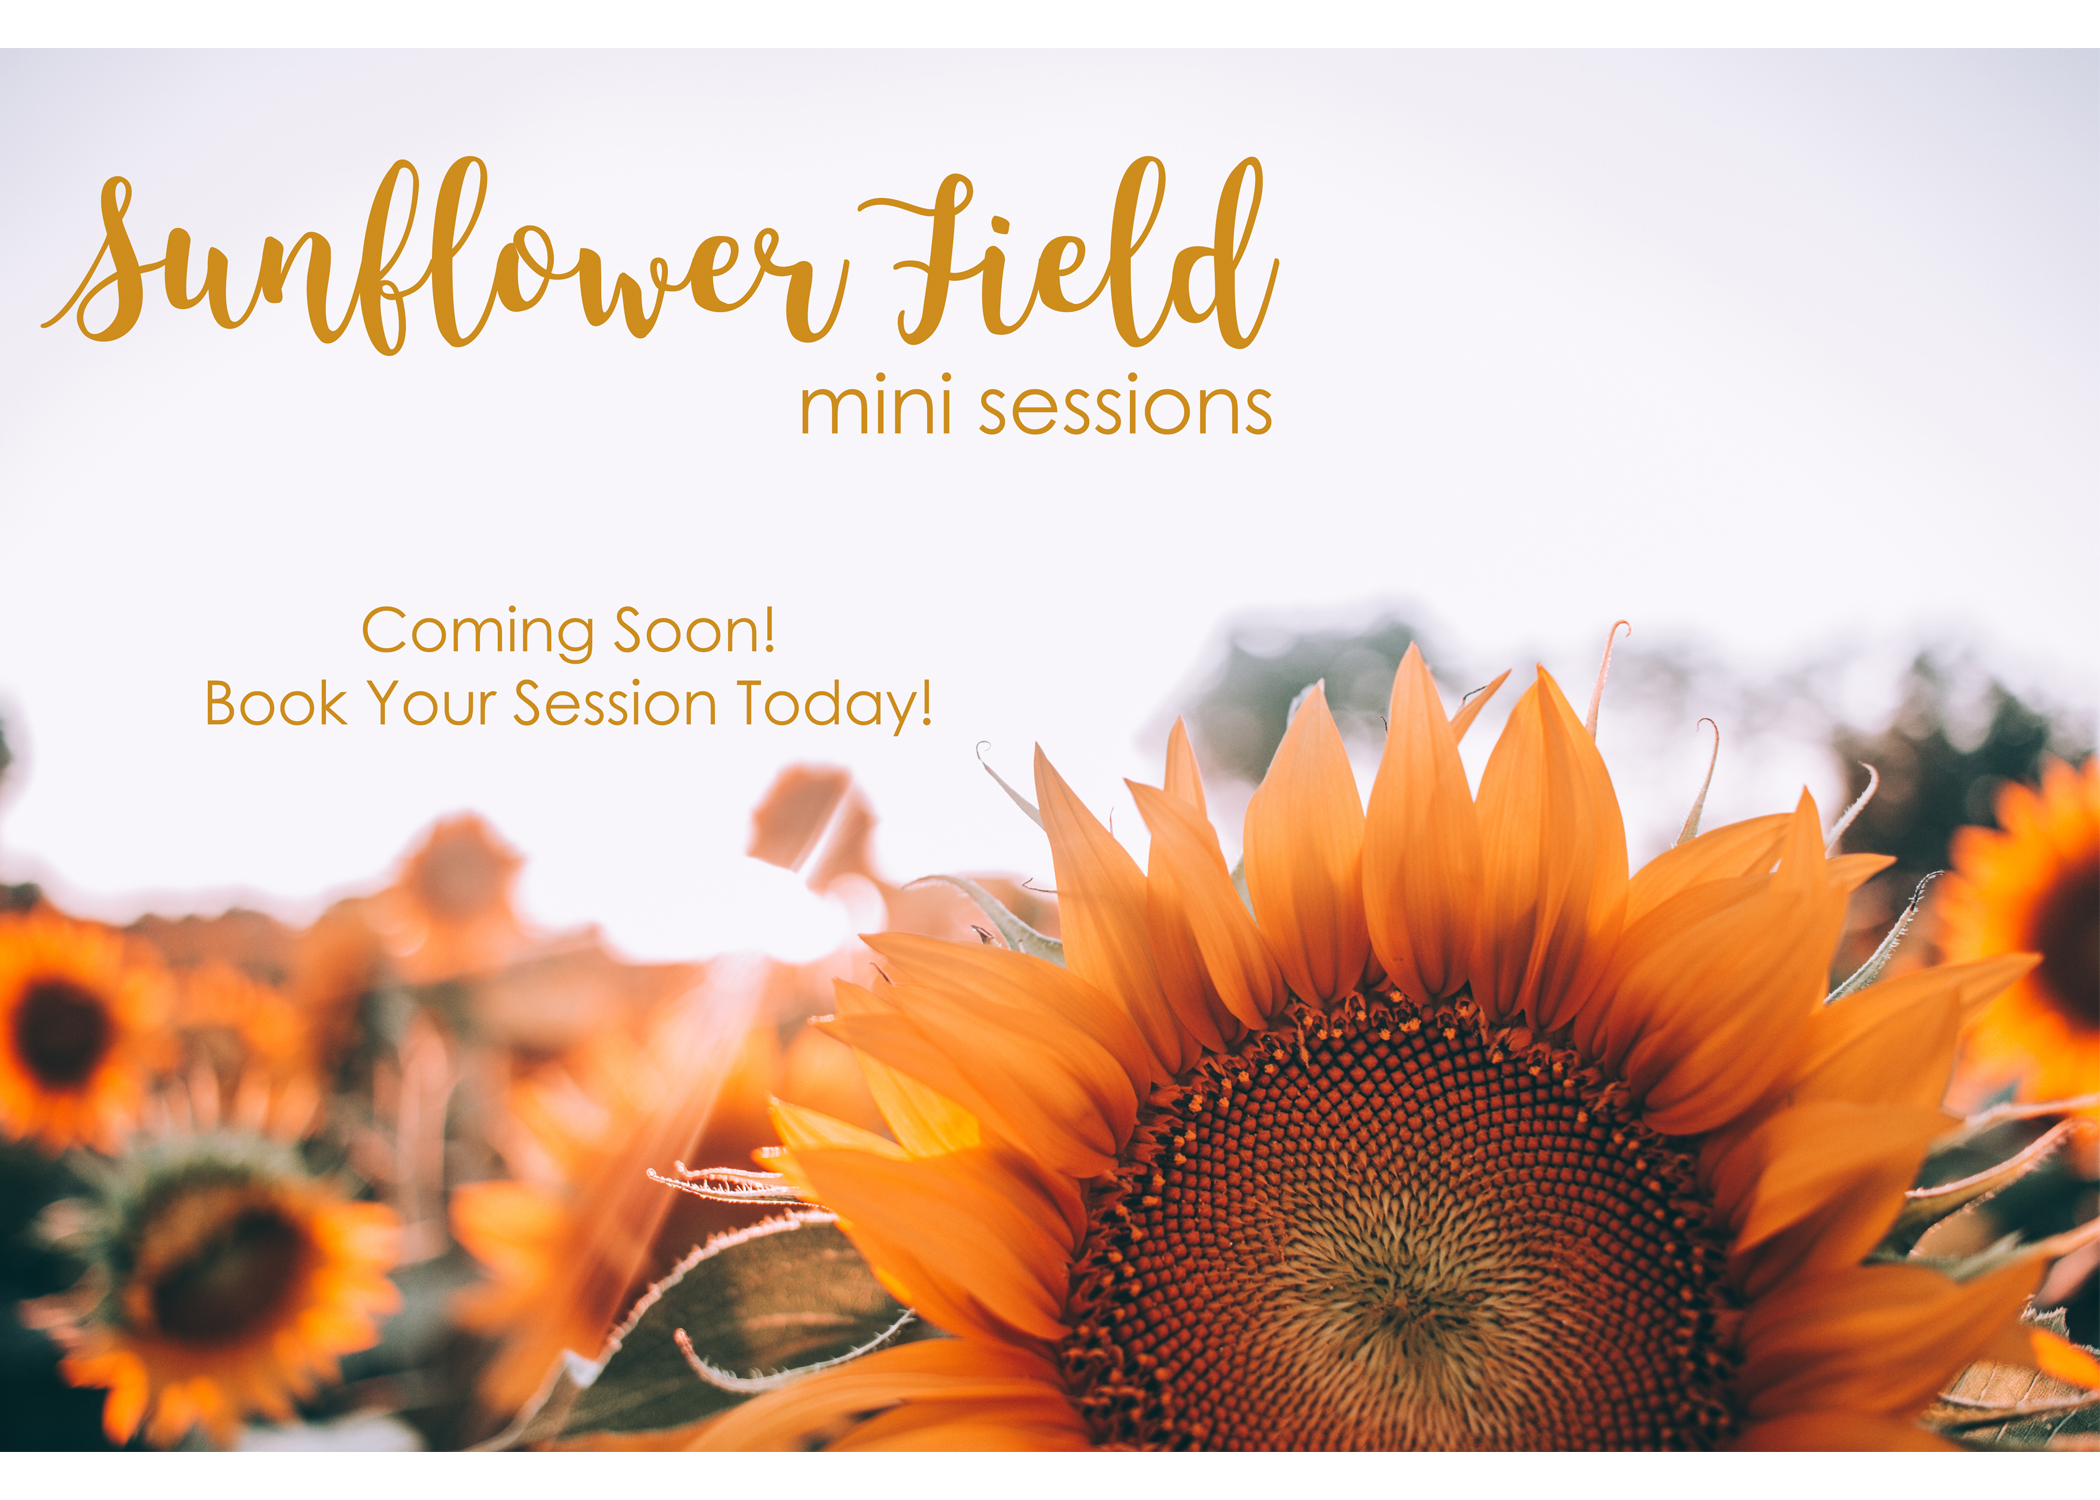 Sunflower field mini sessions in Tuscaloosa AL by Beautiful Horizon Photography. Tuscaloosa Photographer.